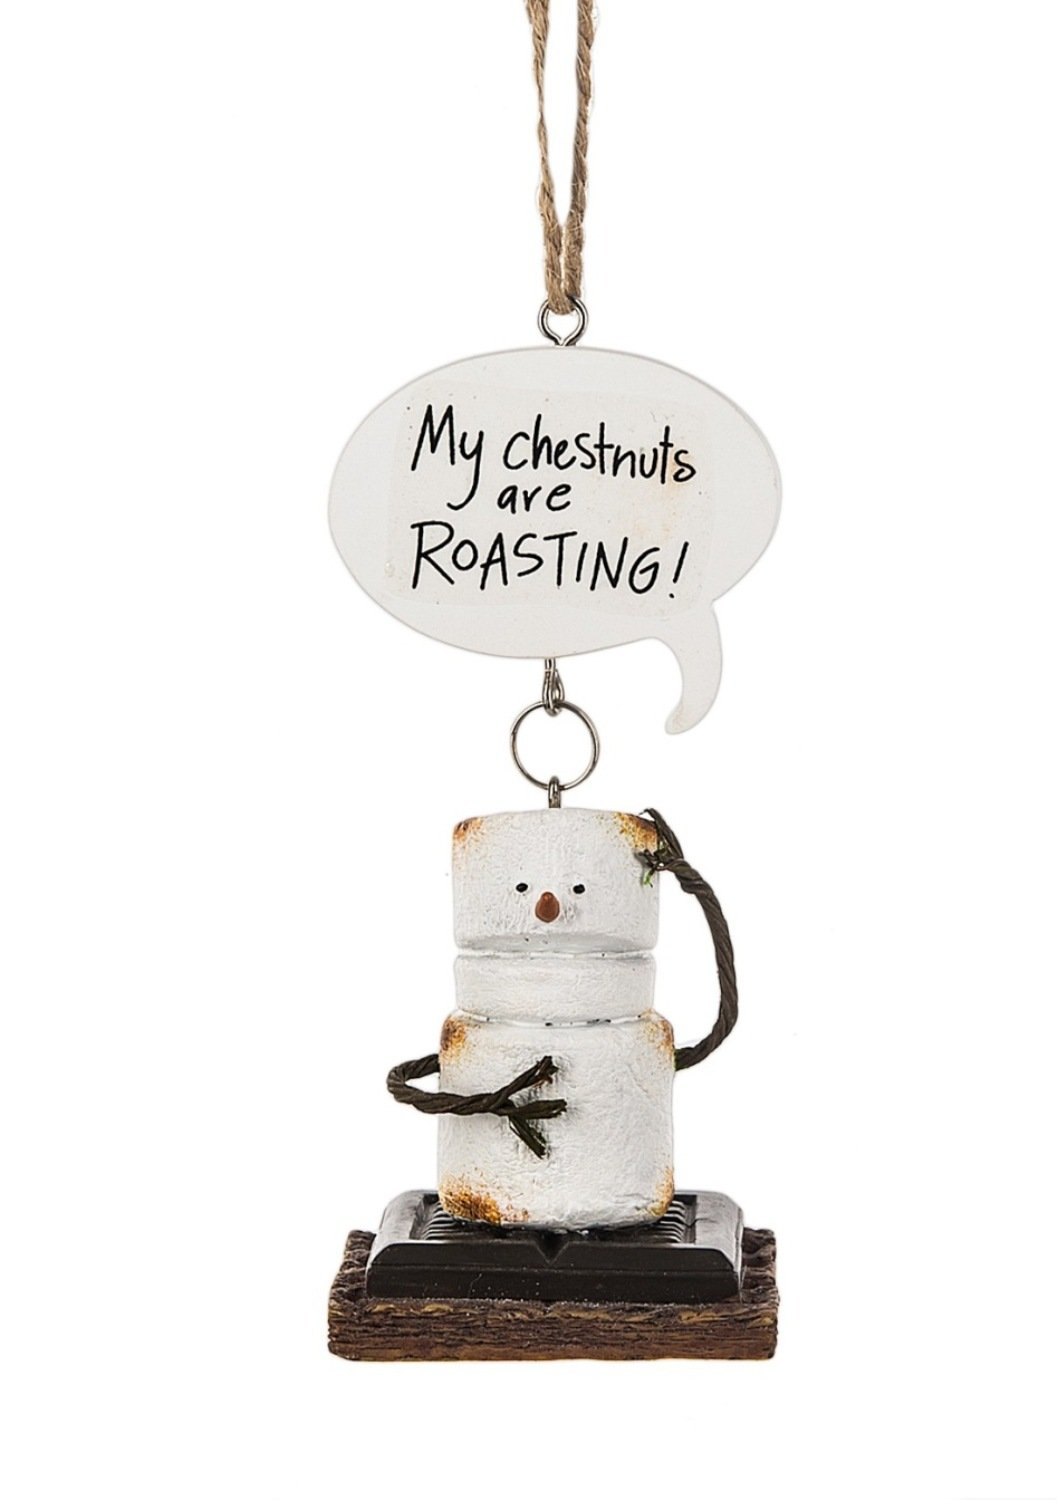 Toasted Smores My Chestnuts Are Roasting Christmas Holiday Ornament Midwest CBK 121694